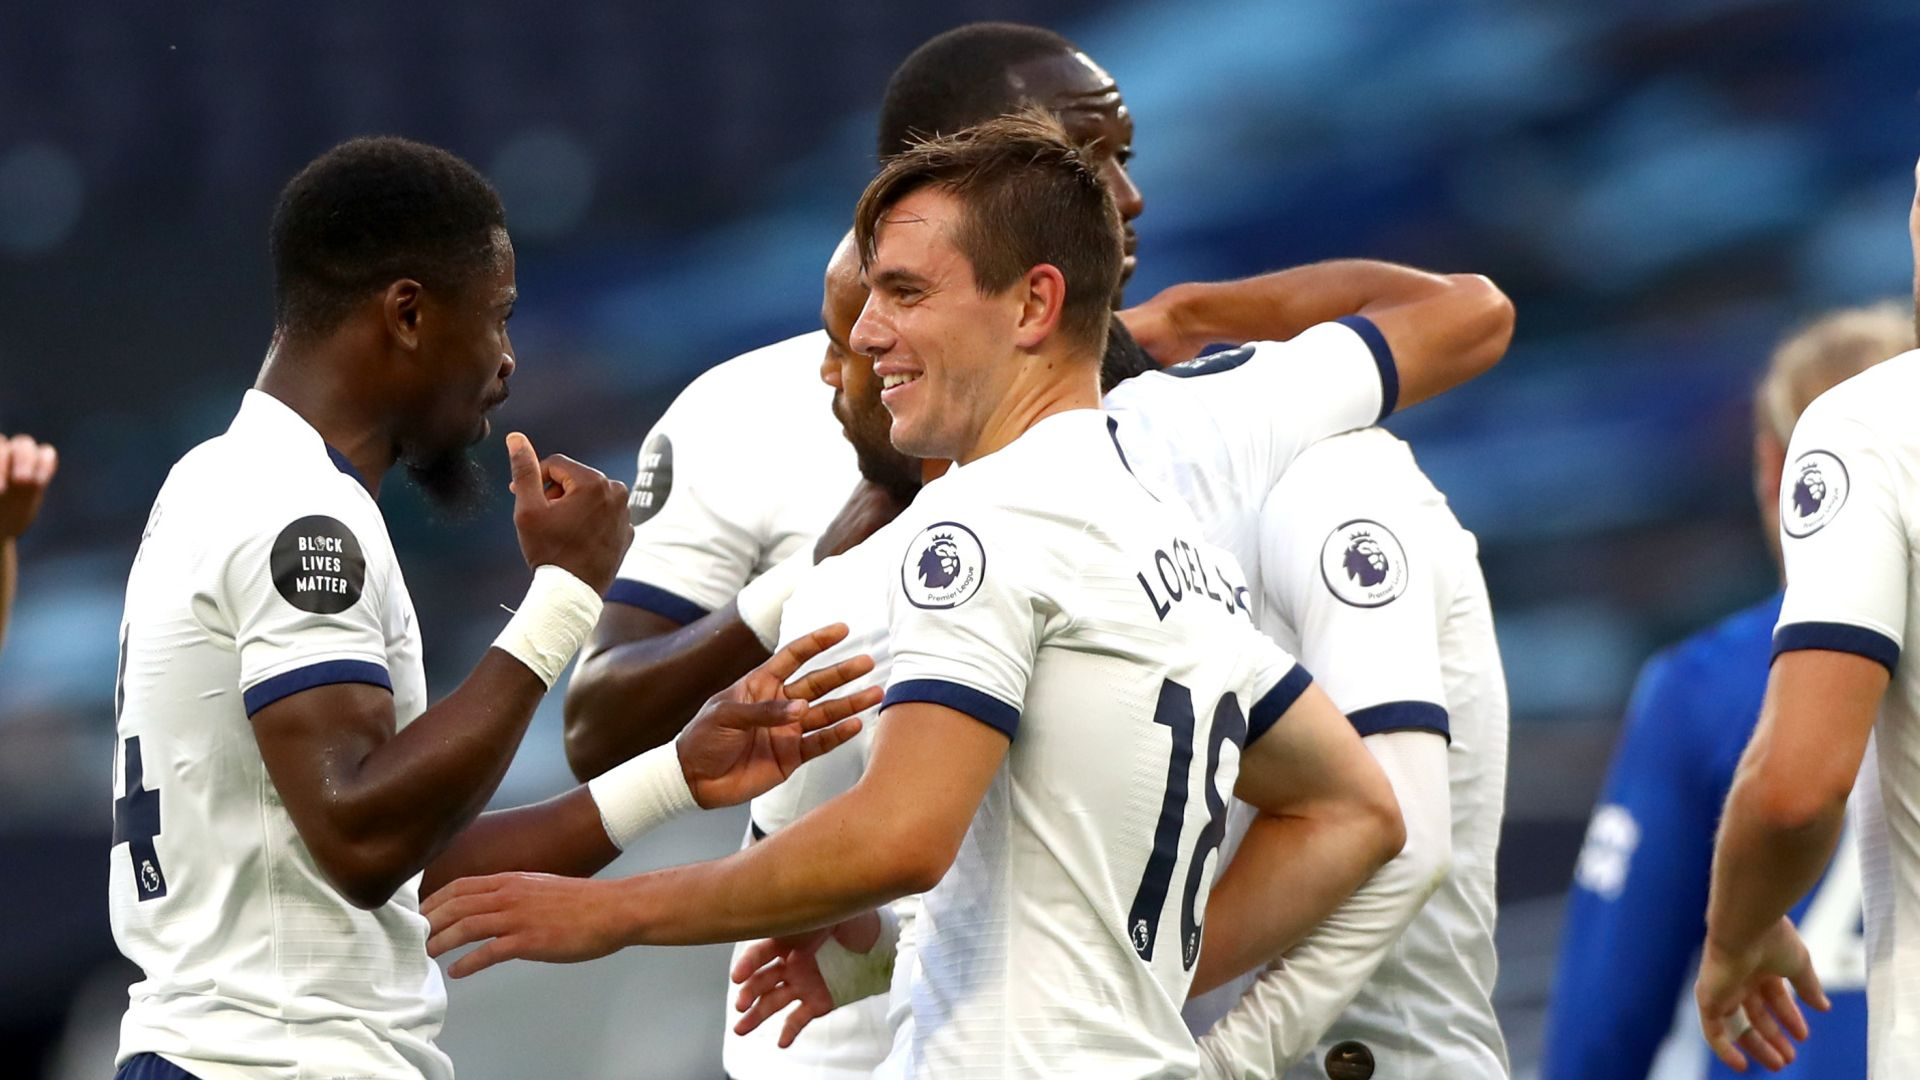 Keane own goal gives Spurs scrappy win